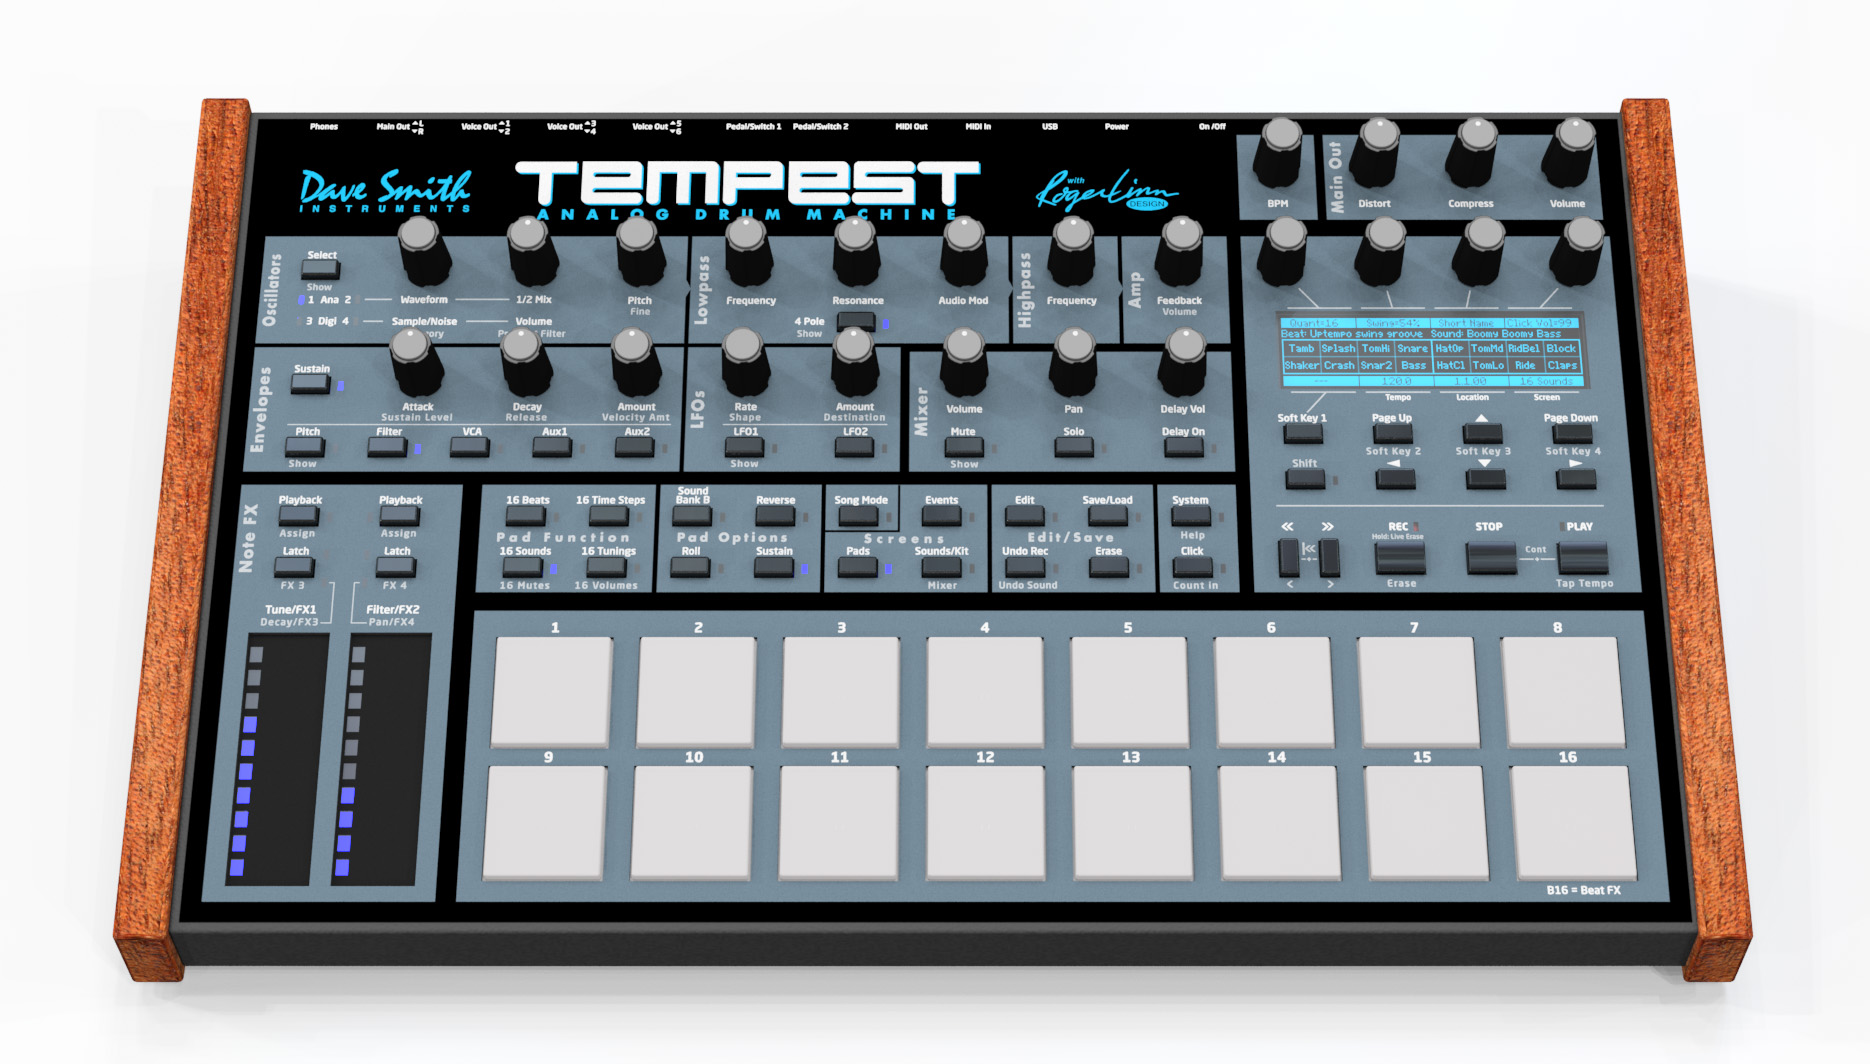 tempest roger linn dave smith analog drum machine is official cdm create digital music. Black Bedroom Furniture Sets. Home Design Ideas